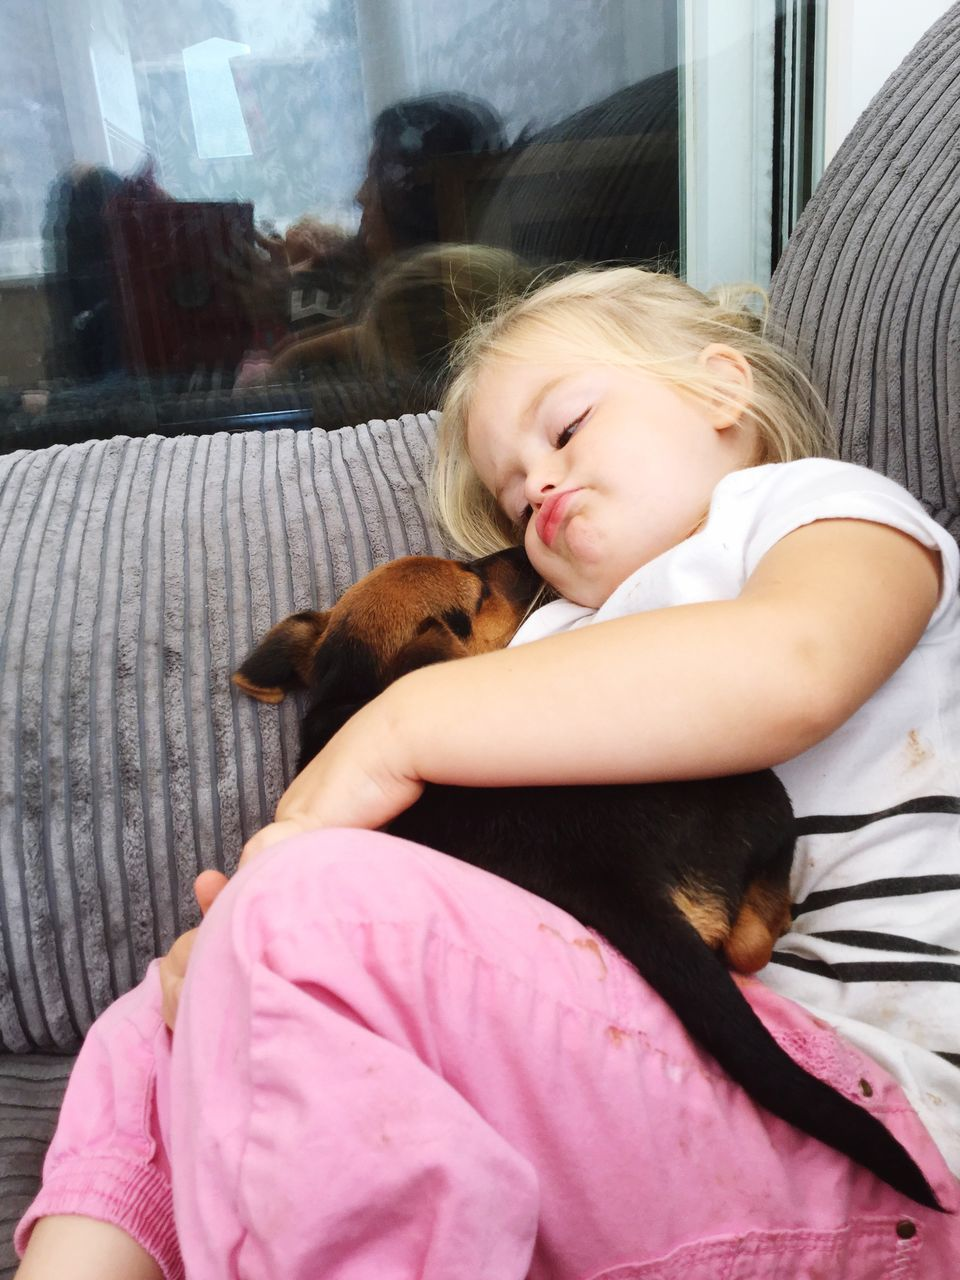 real people, one animal, pets, domestic animals, animal themes, mammal, sleeping, one person, childhood, home interior, bed, dog, indoors, cute, girls, bonding, relaxation, sitting, lifestyles, day